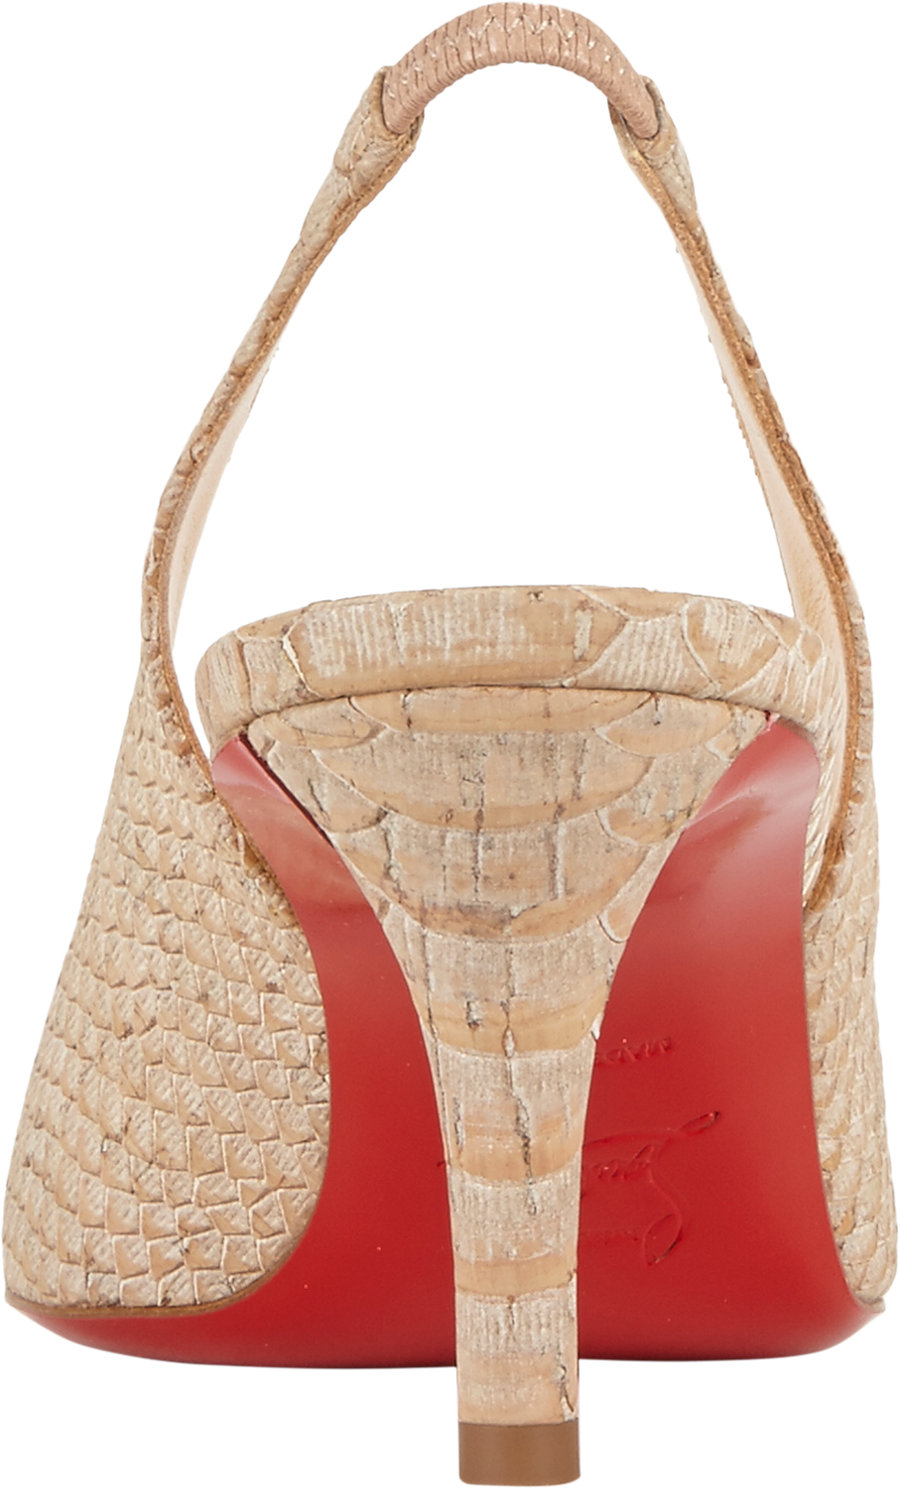 louboutin shoe price - Christian louboutin Apostrophy Slingback Pumps in Beige (Nude) | Lyst